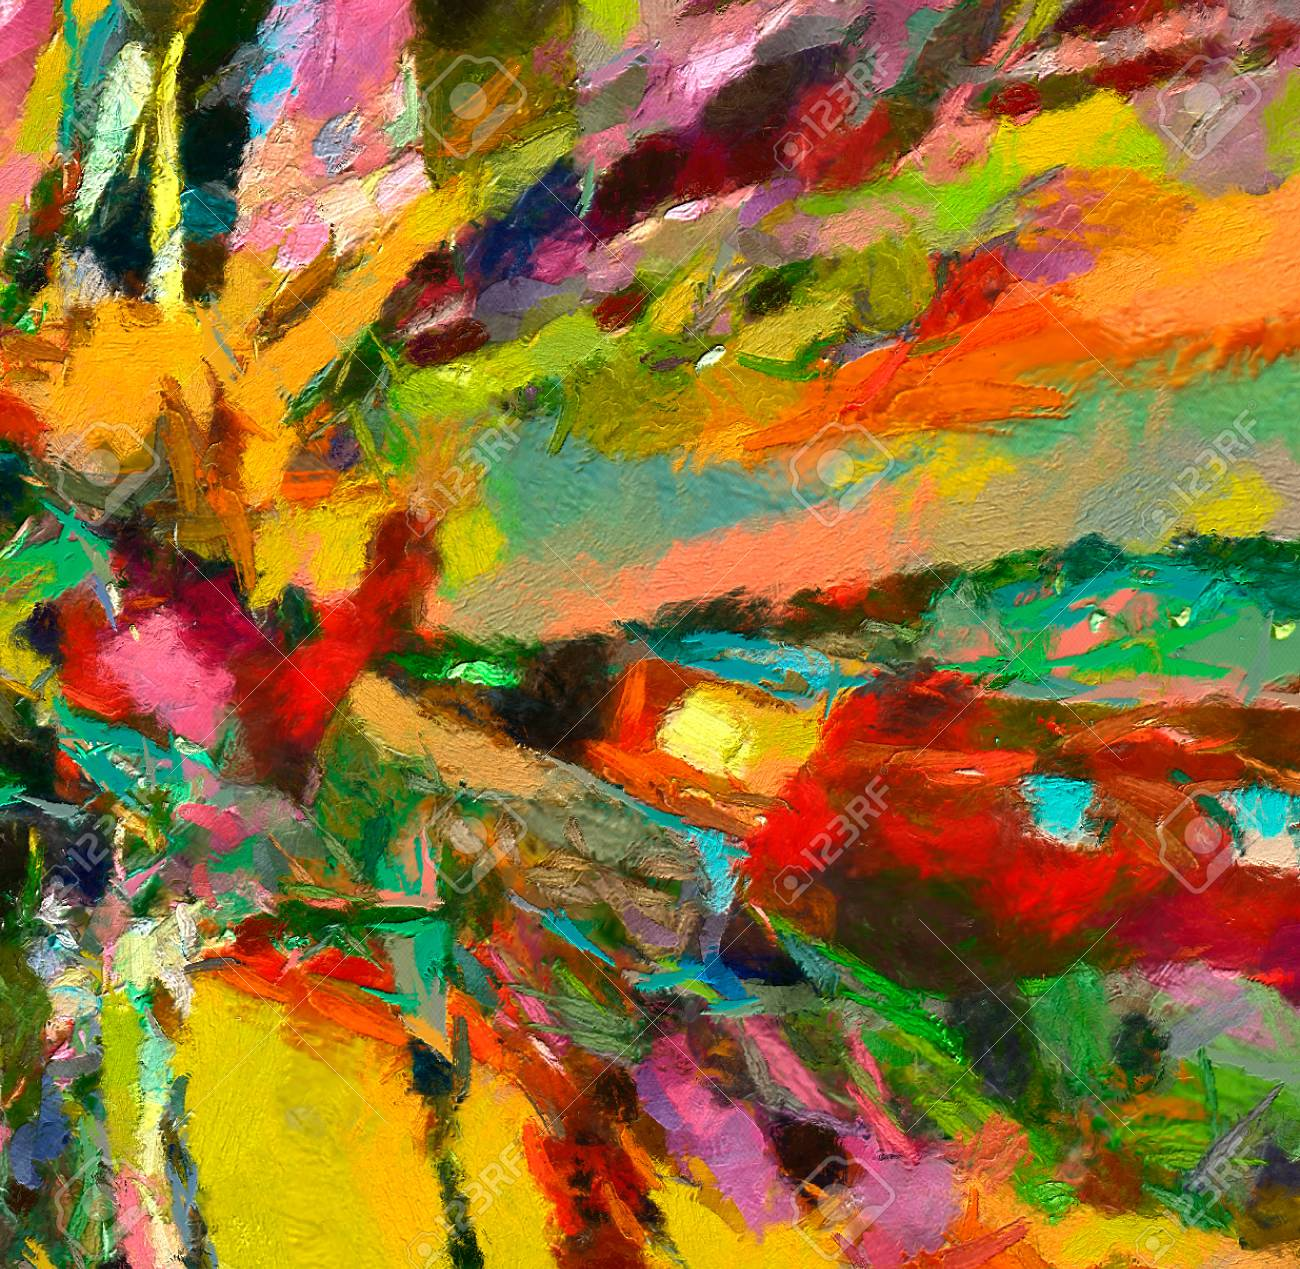 Oil Painting Abstract Modern Contemporary Art For Background